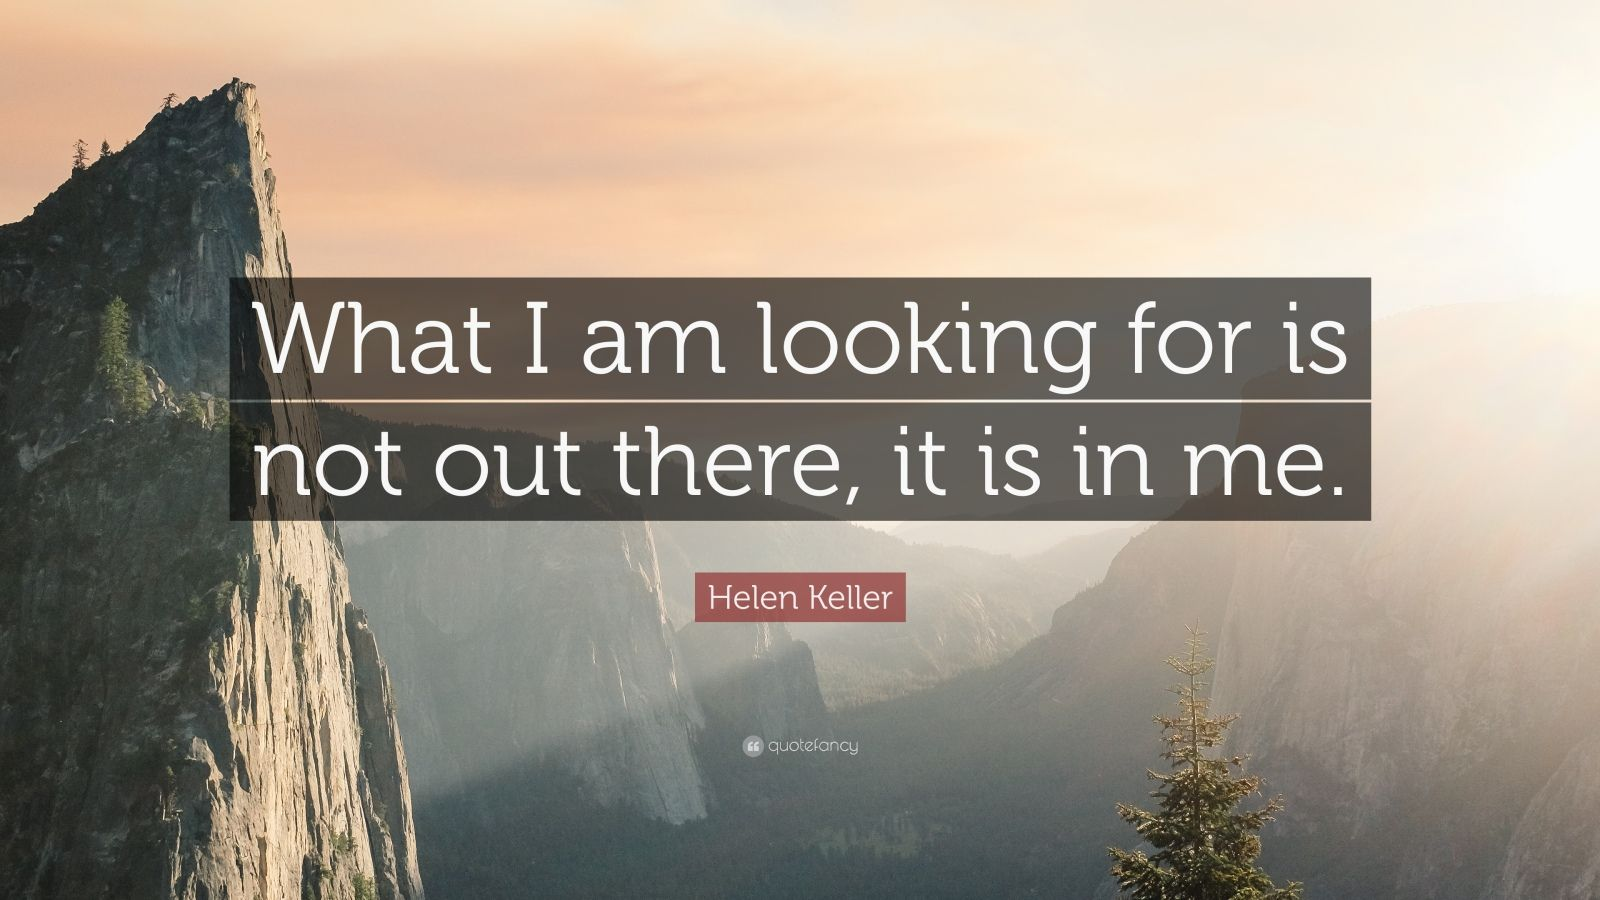 Helen Keller Quote: What I am looking for is not out